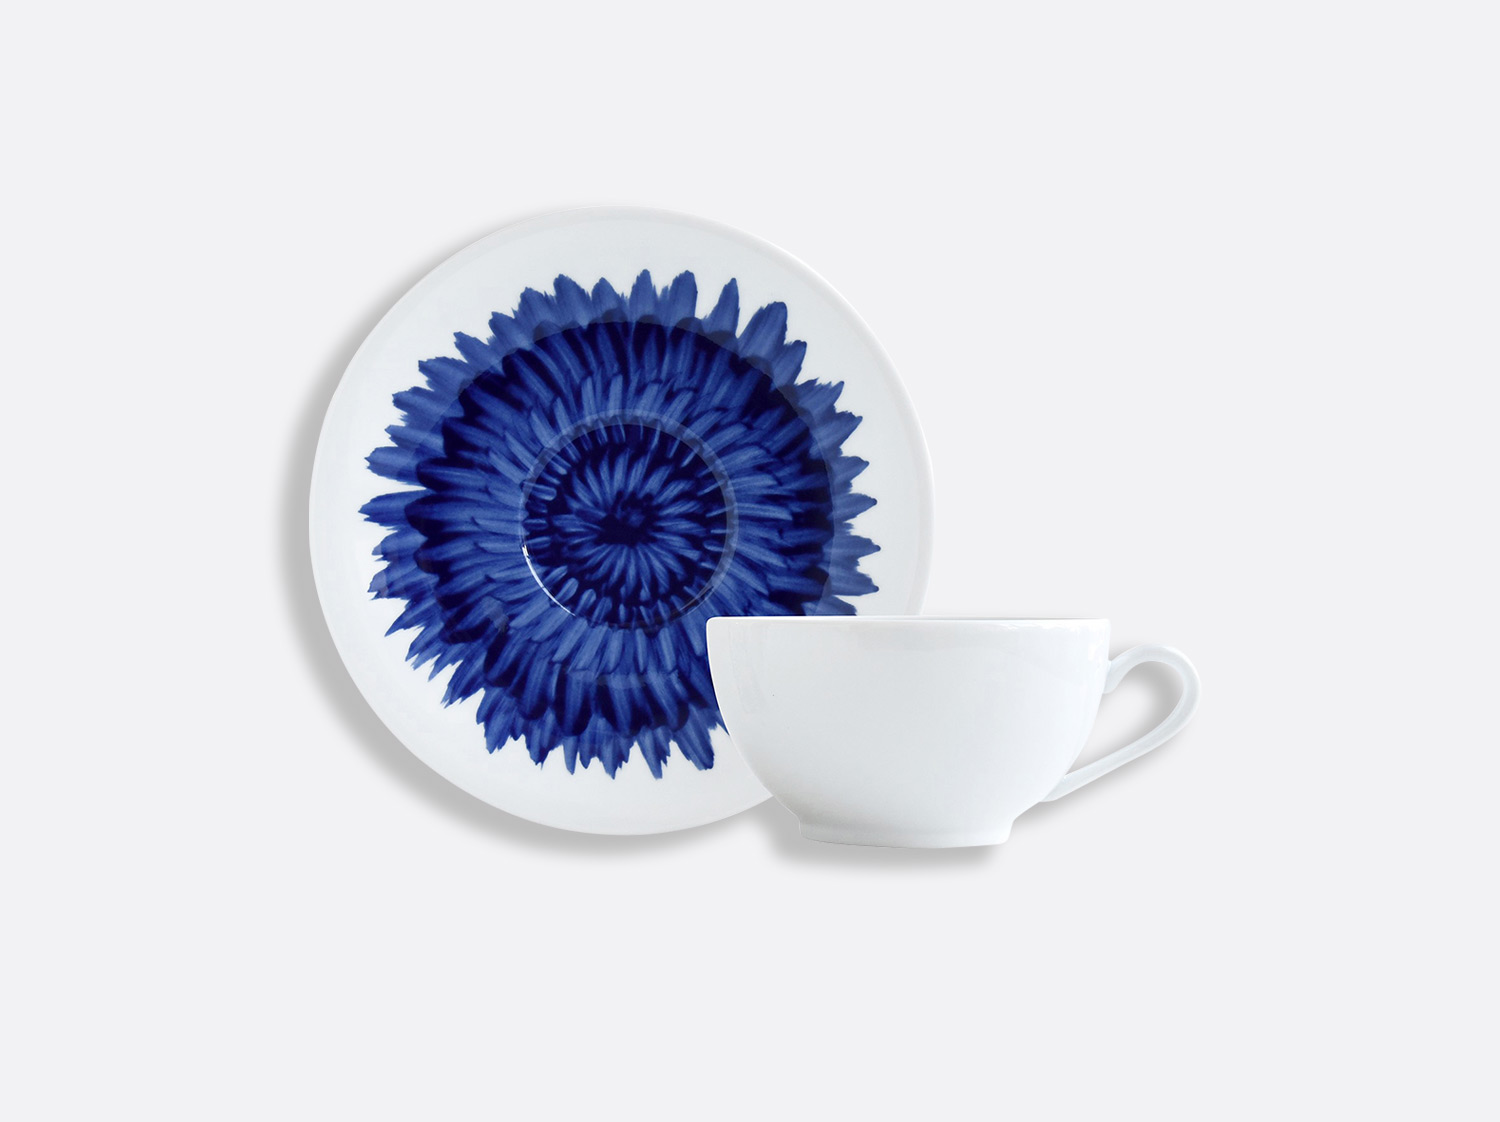 Tasse et soucoupe déjeuner 25 cl en porcelaine de la collection IN BLOOM - Zemer Peled Bernardaud